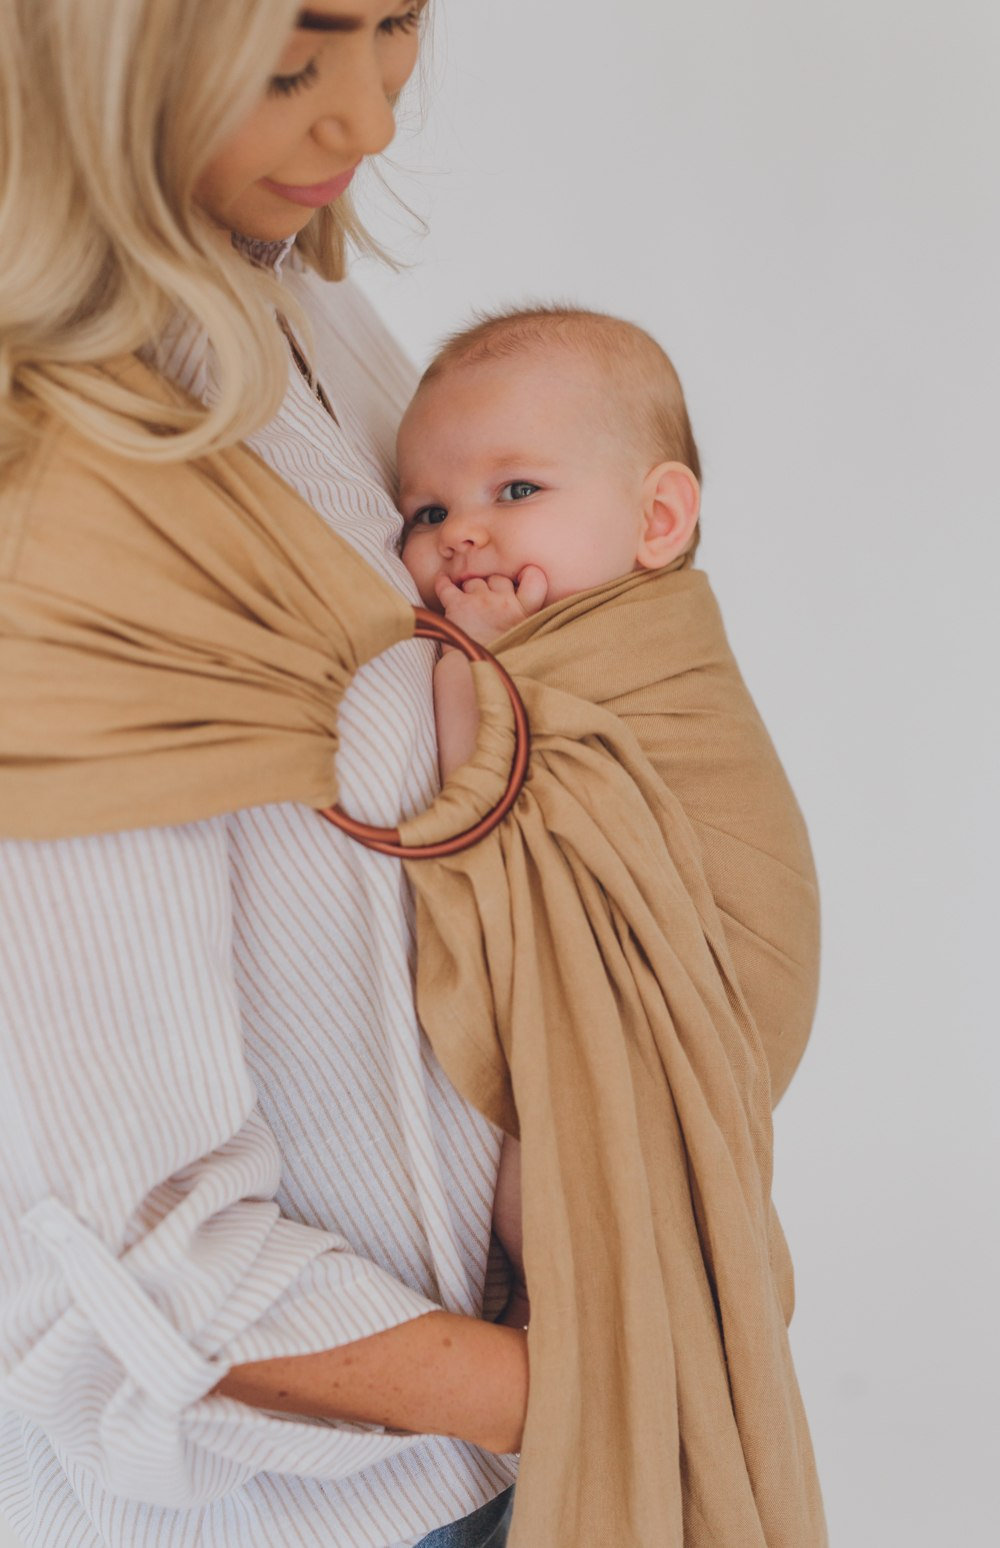 australia's best chekoh camel baby sling carrier for newborns, infants and toddlers